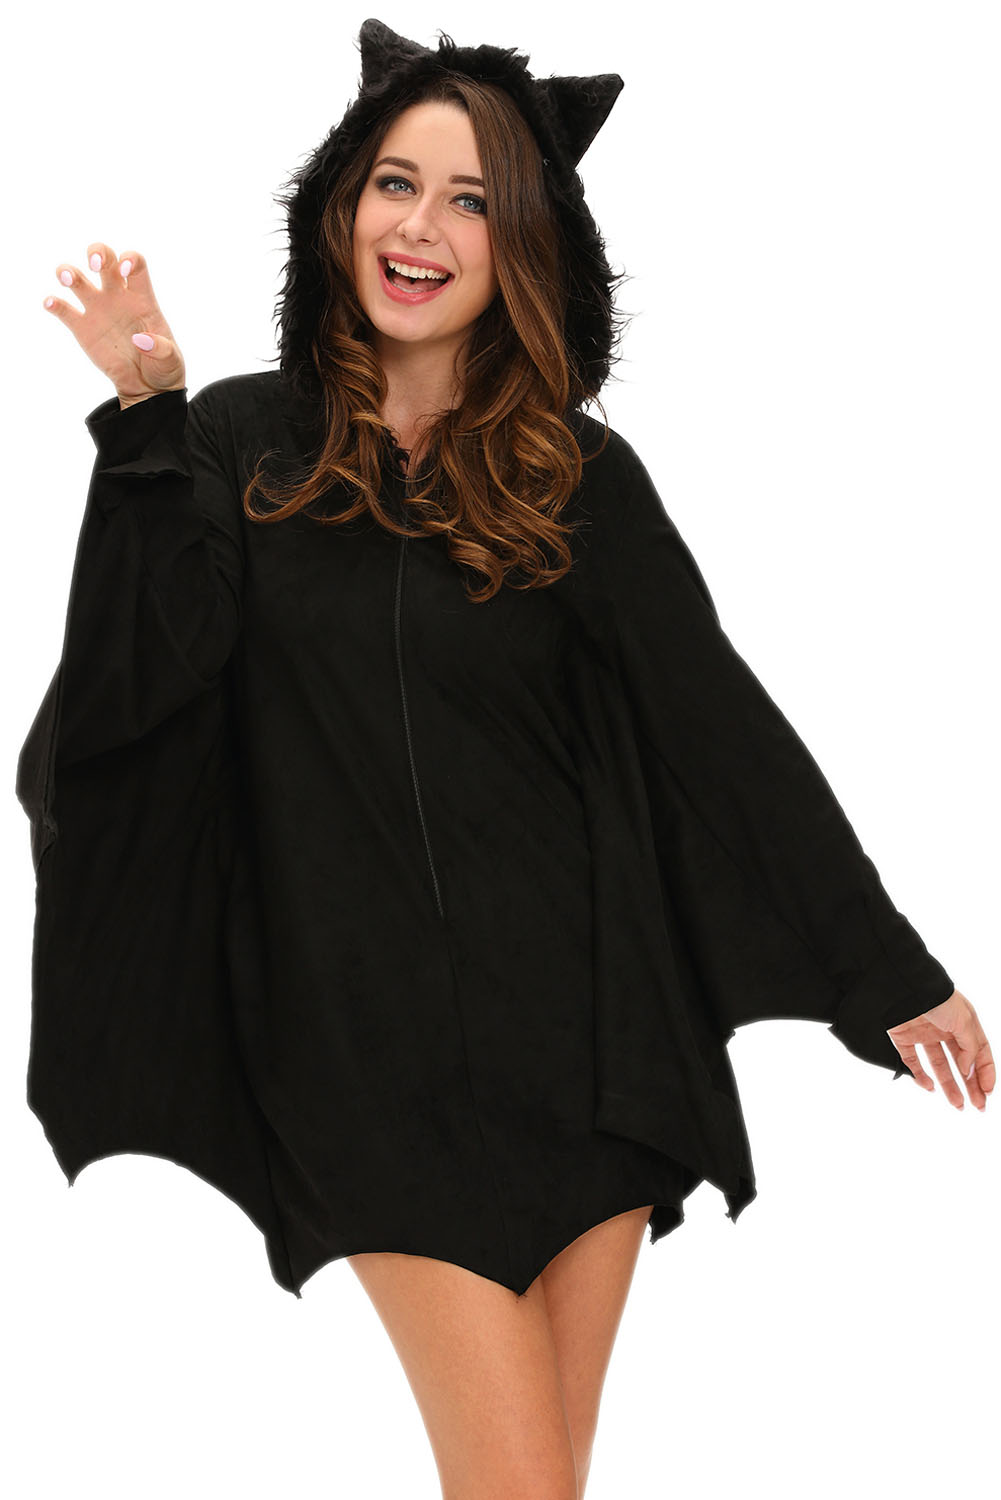 All in Black Bat Adult Halloween Costume